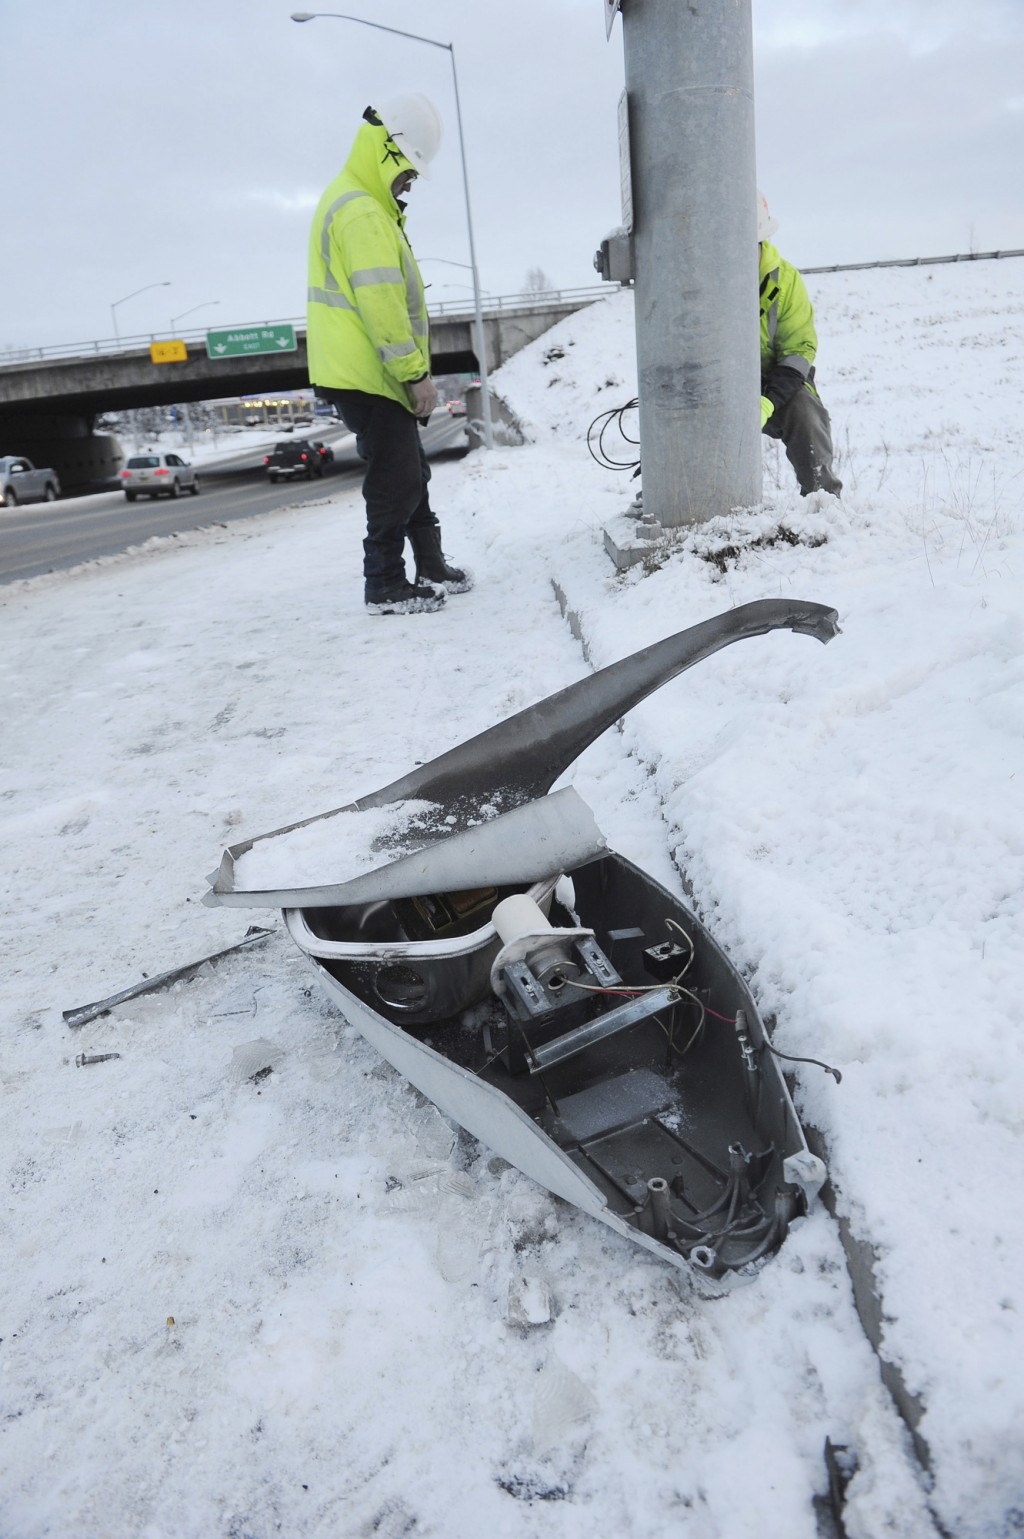 Energy Services North employees prepare to replace a fallen street light Friday, Nov. 30, 2018, in Anchorage, Alaska, one of the effects of the mornin...